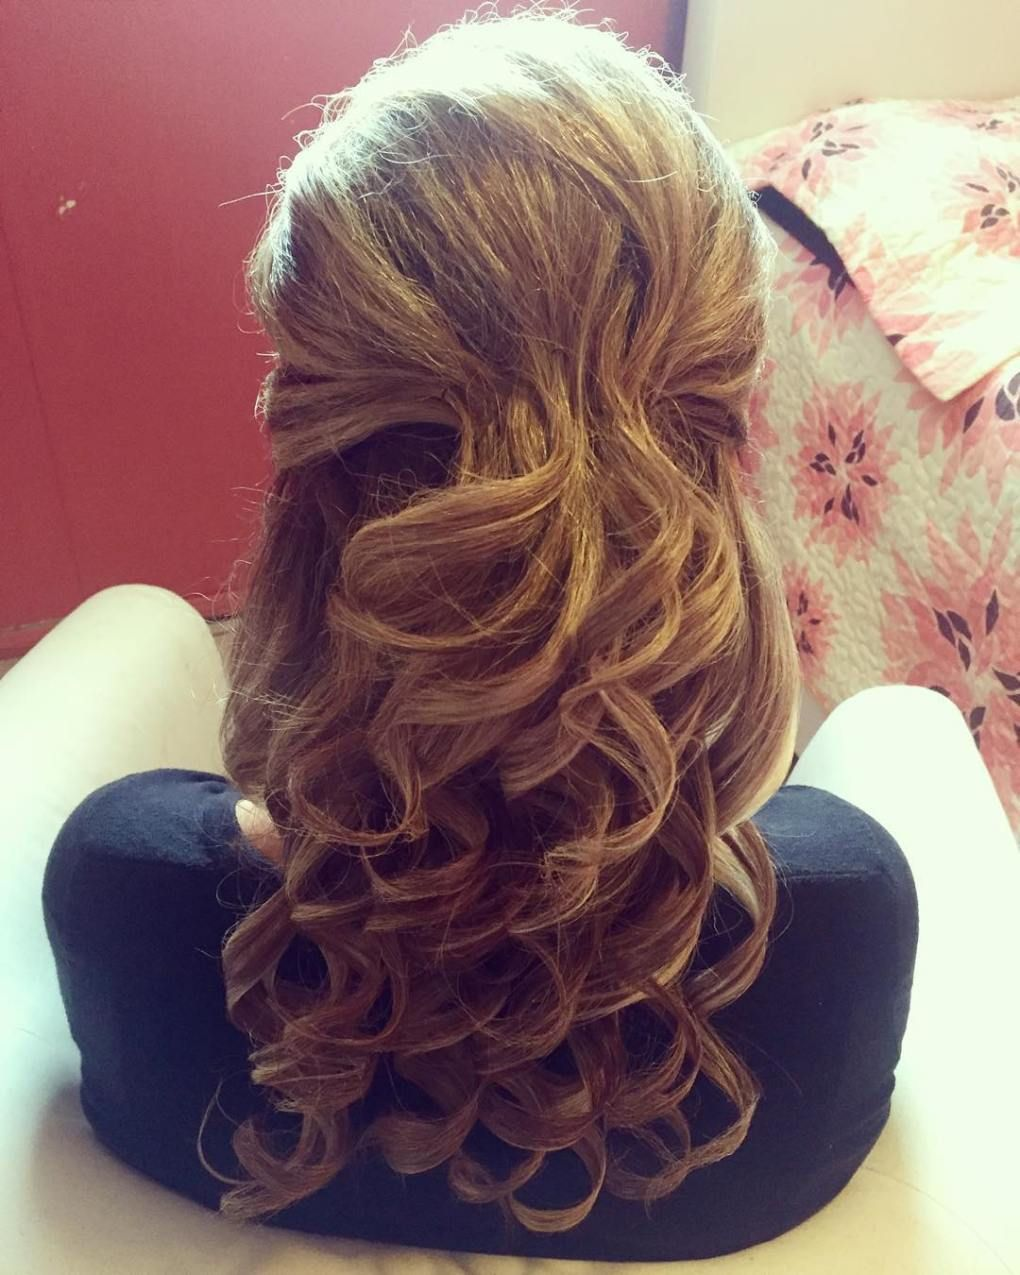 29 Cool Wedding Hairstyles For The Modern Bride: 50 Ravishing Mother Of The Bride Hairstyles